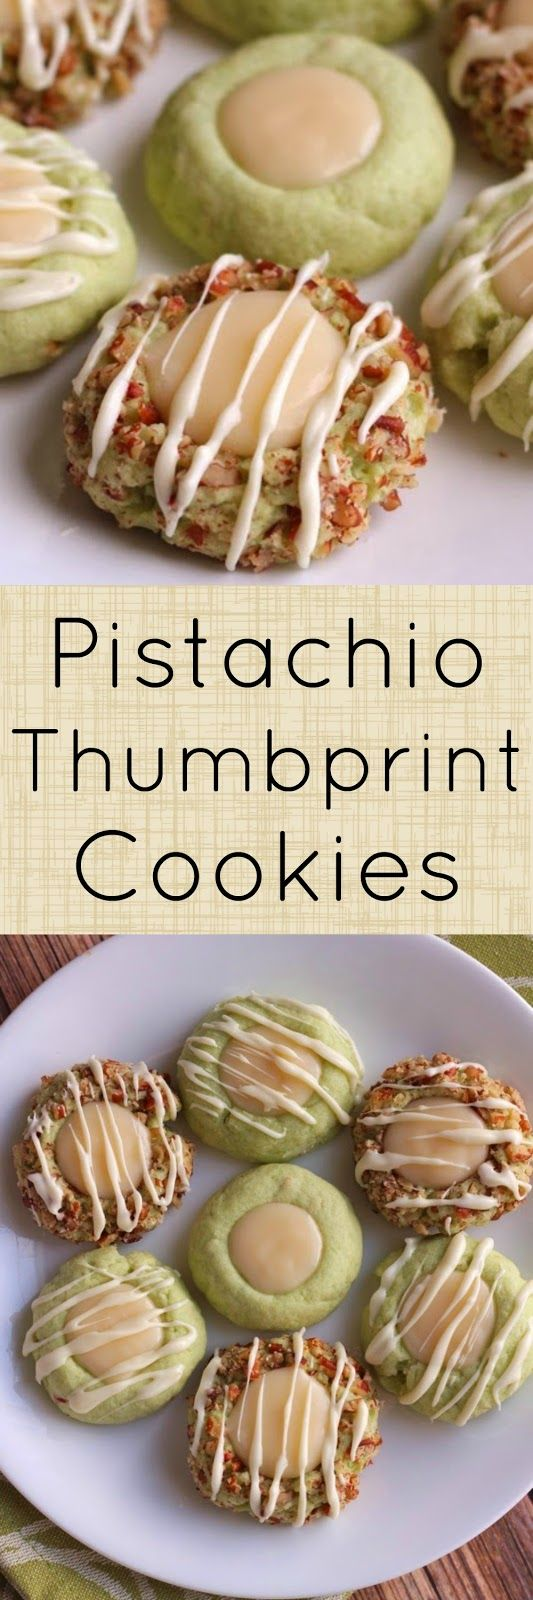 Pistachio Thumbprint Cookies with Cream Cheese Filling and White Chocolate Drizzle